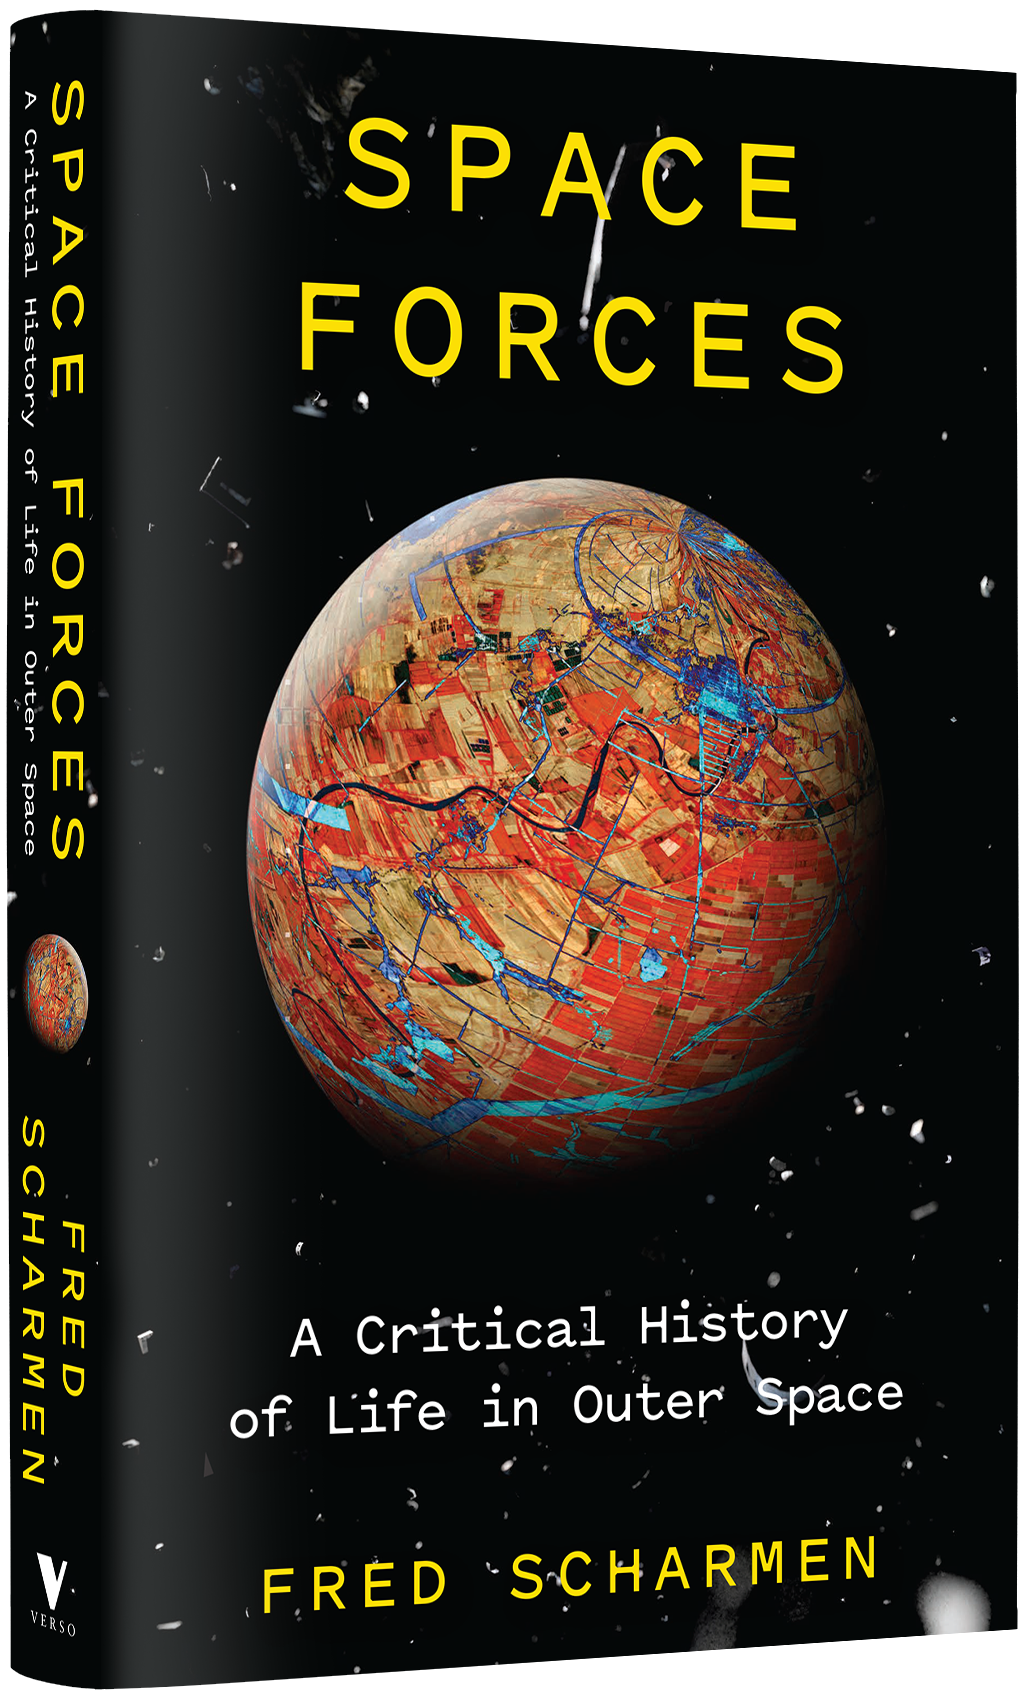 Space-forces